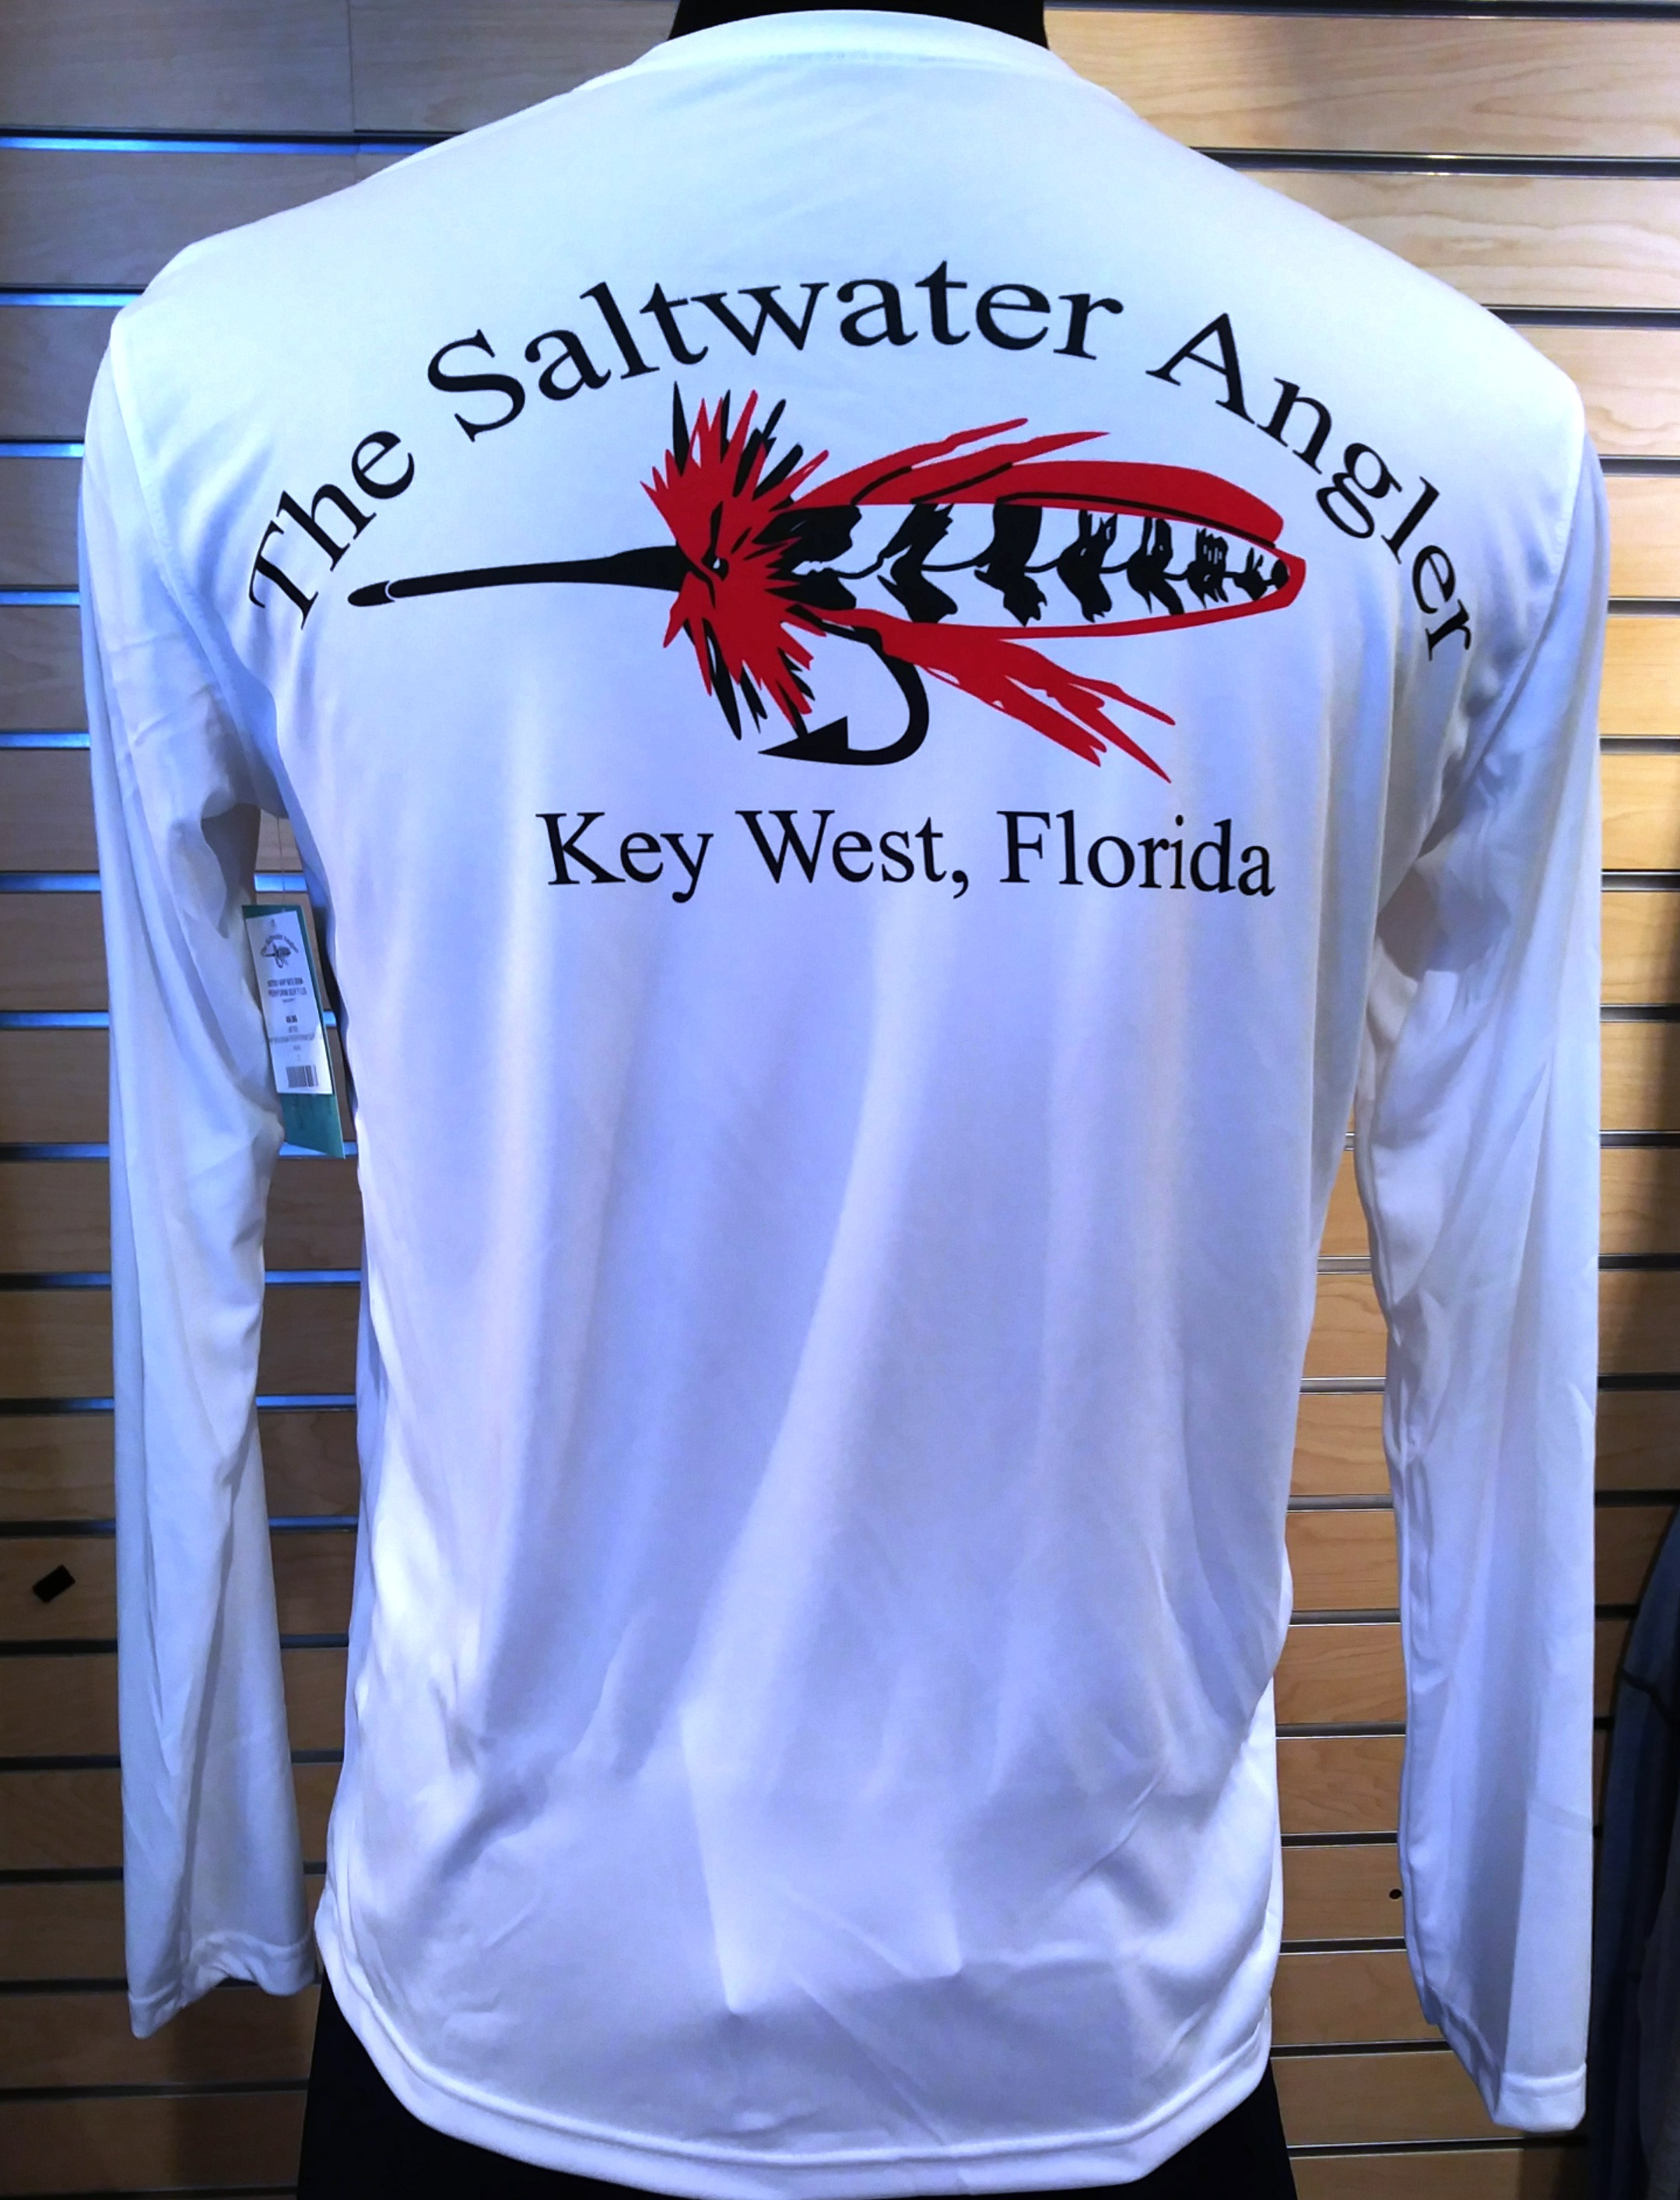 M700 SALT WATER ANGLER PERFORMANCE SHIRT 50 UPF